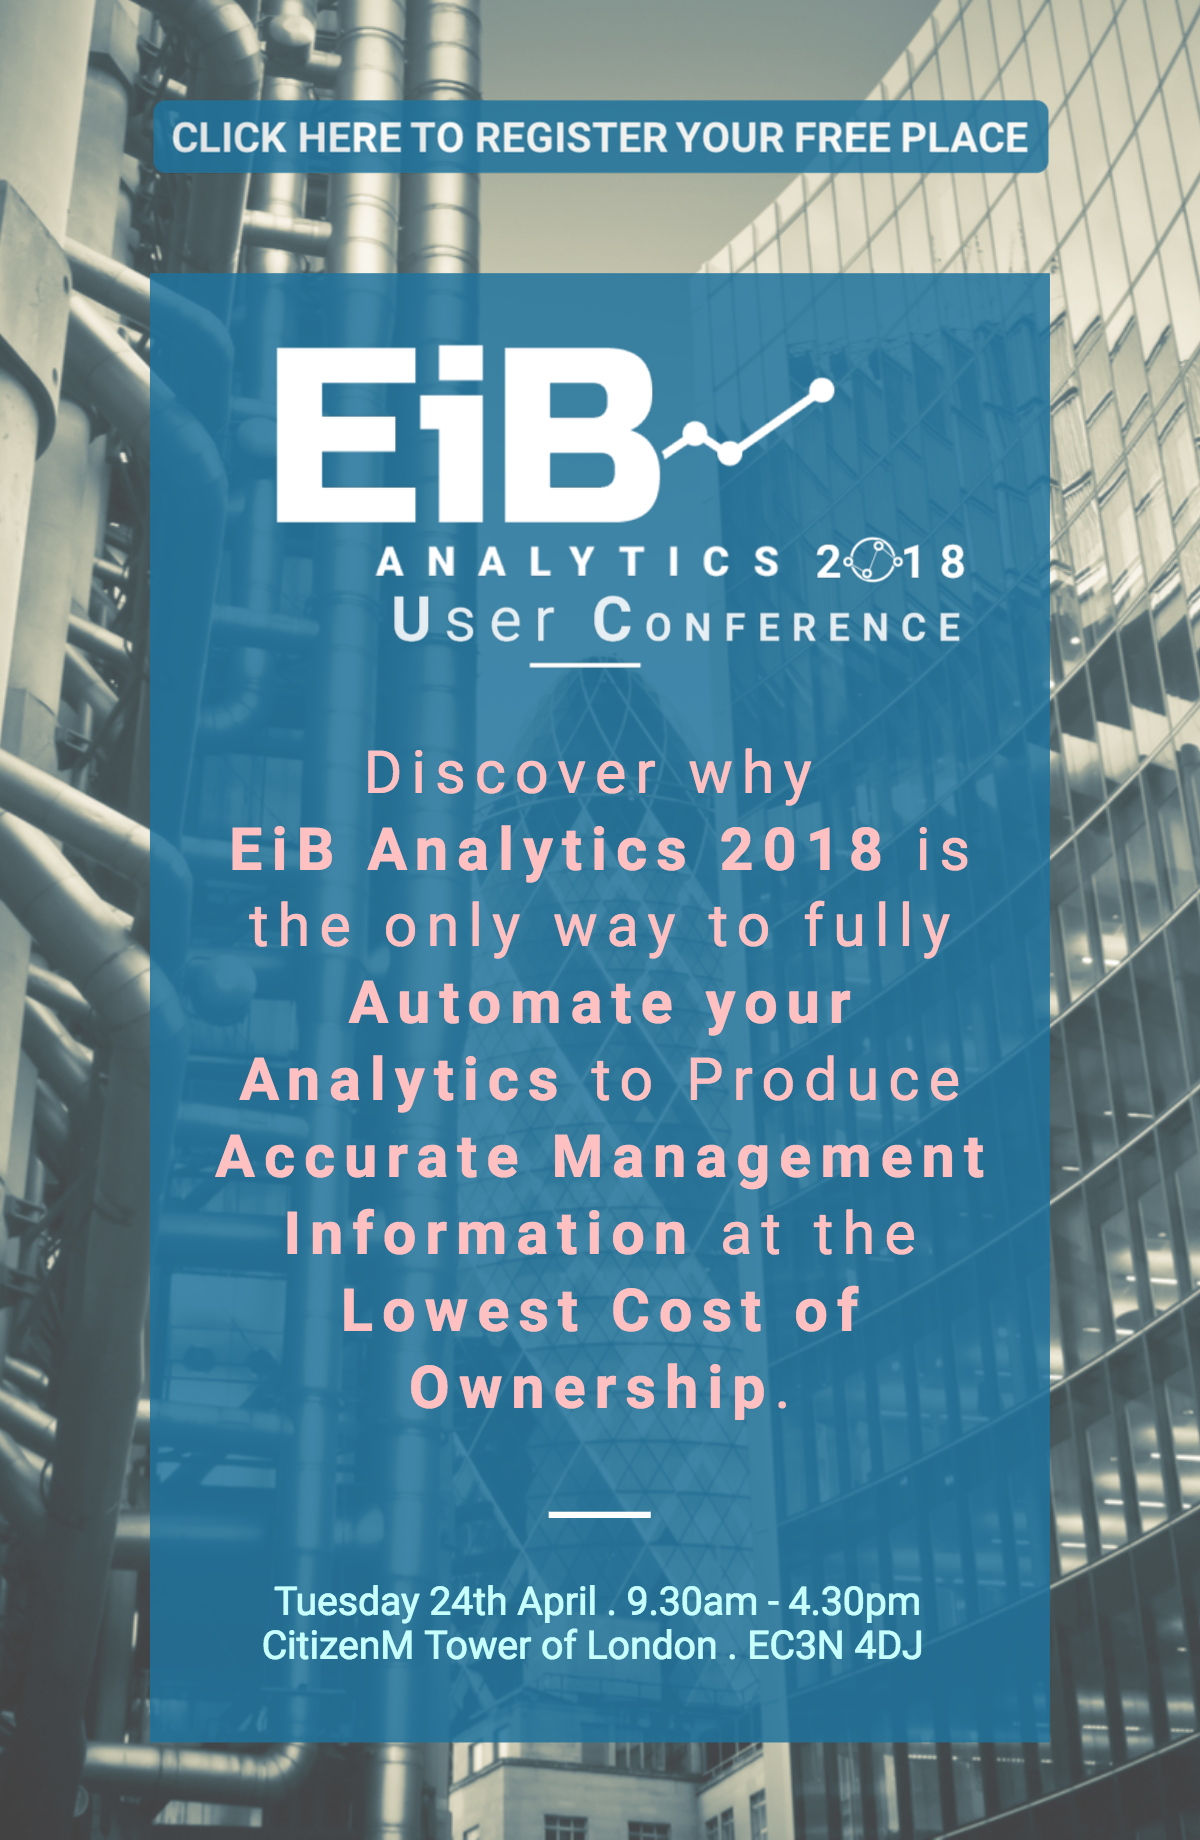 EiB Analytics User Conference 2018 Flyer